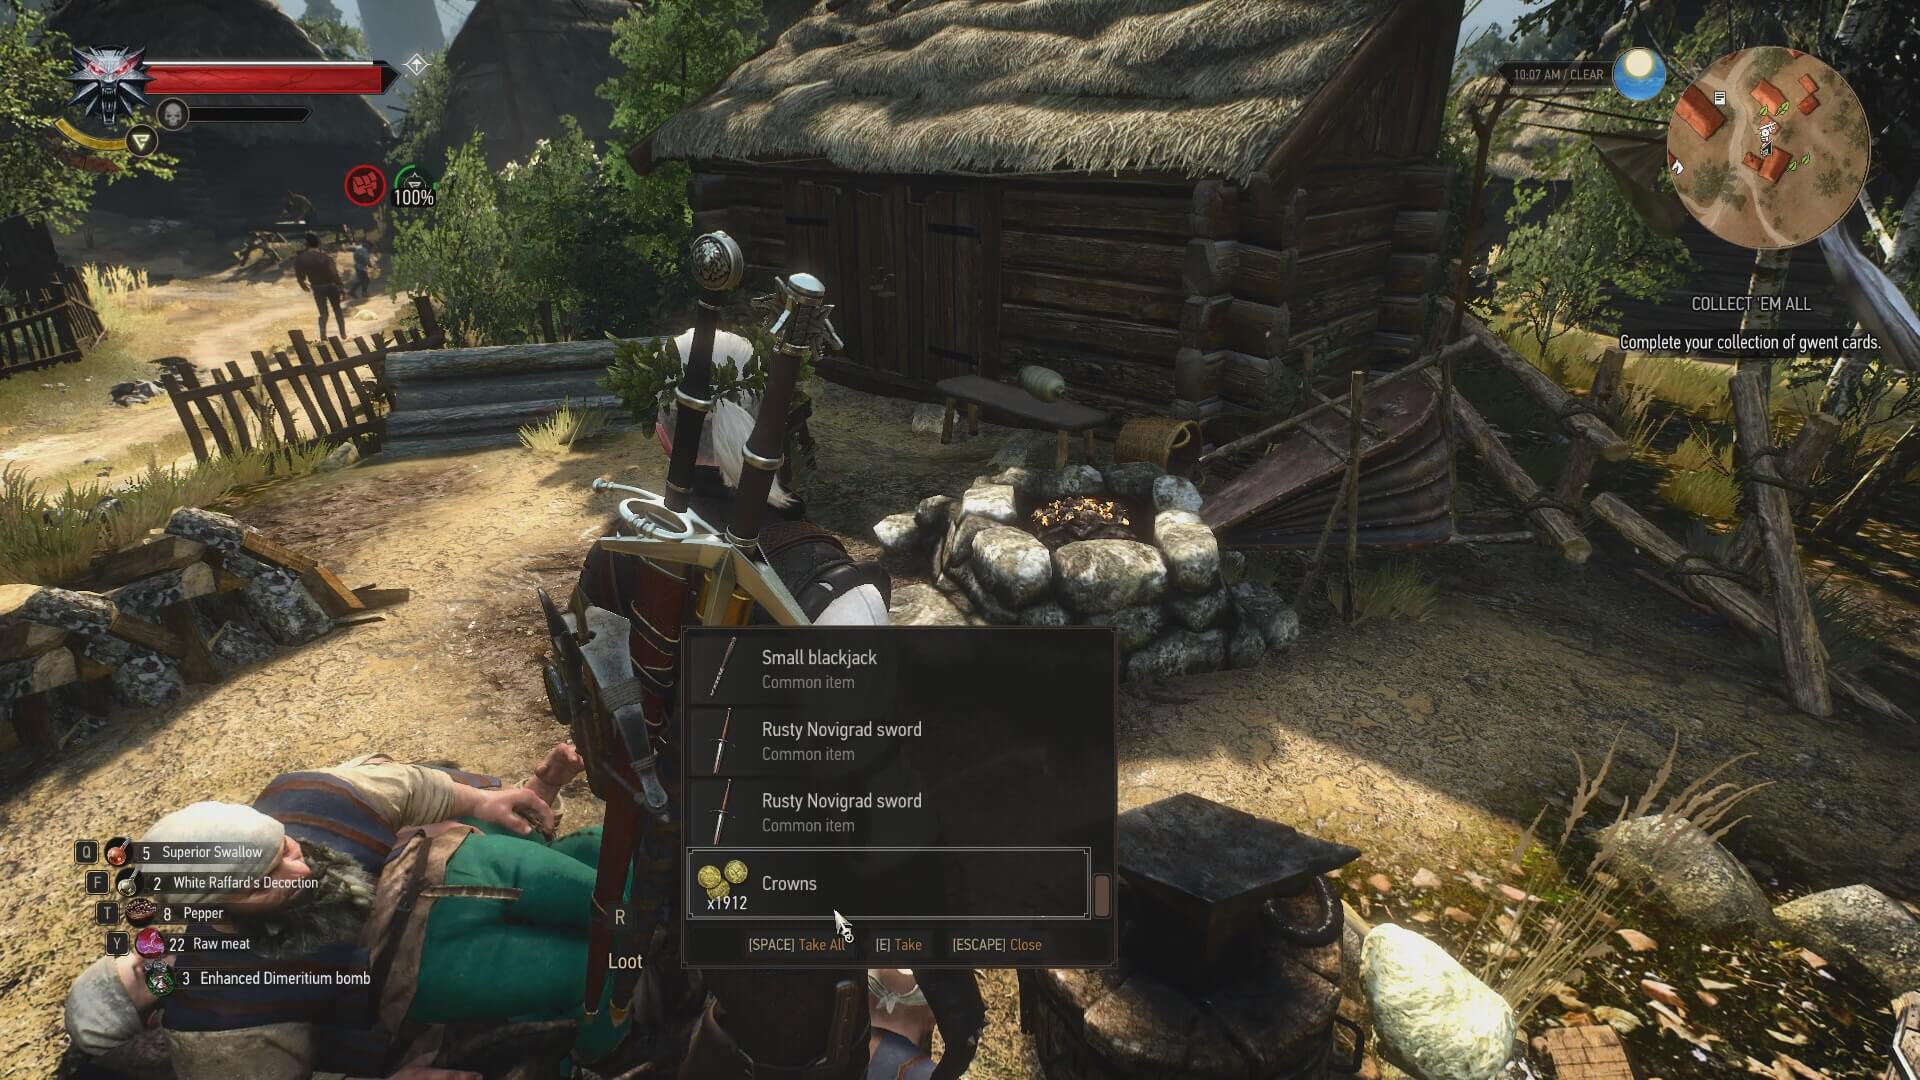 The Best Mods for The Witcher 3 That Completely Change the Game